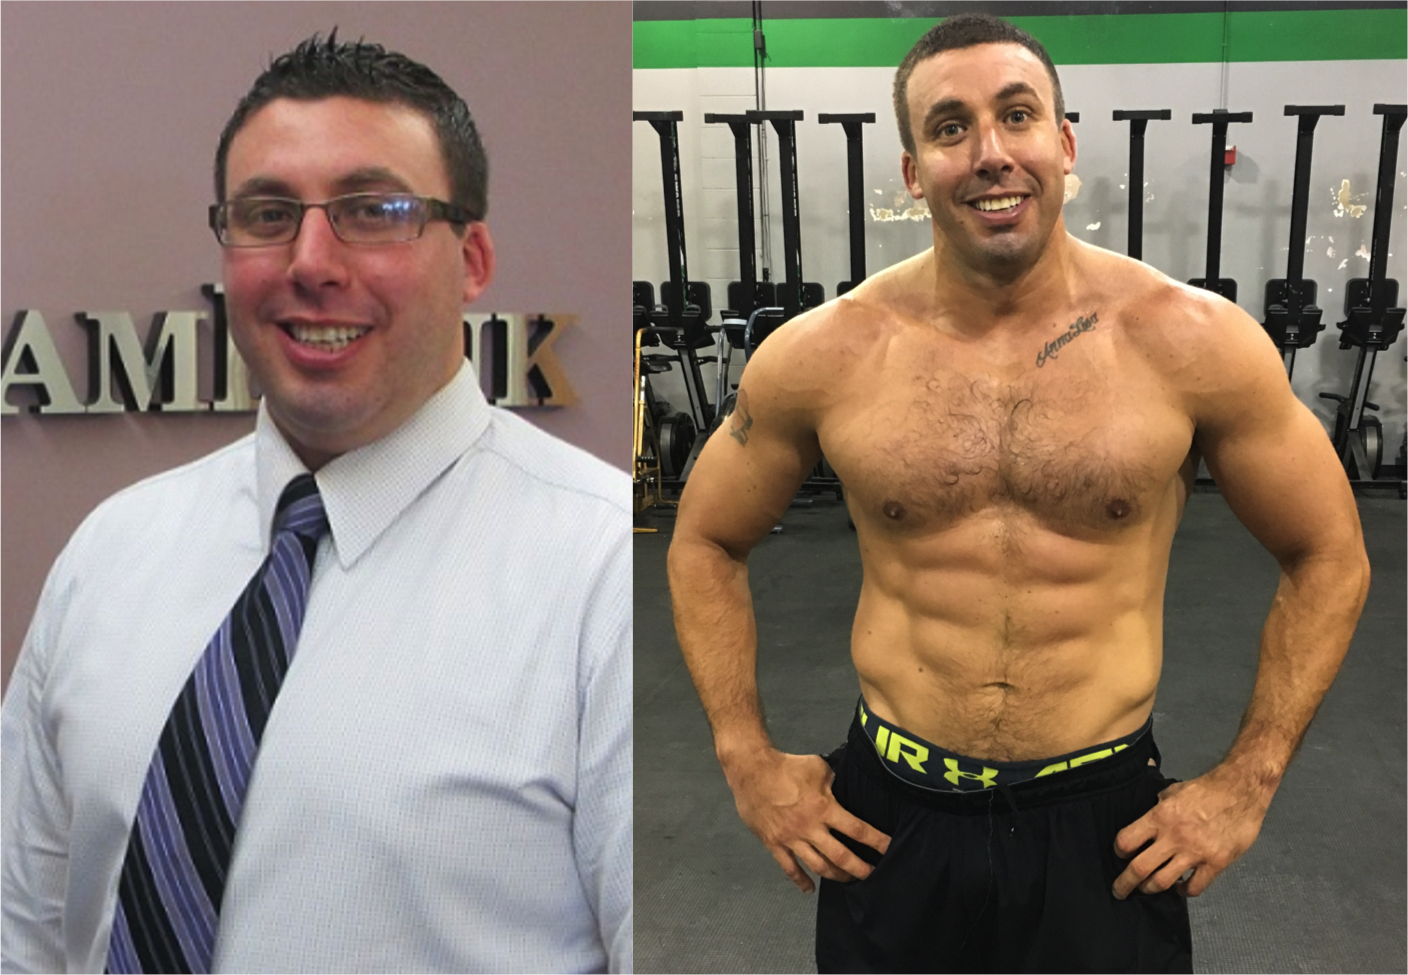 GTrain has lost 50 pounds since joining The Swamp!